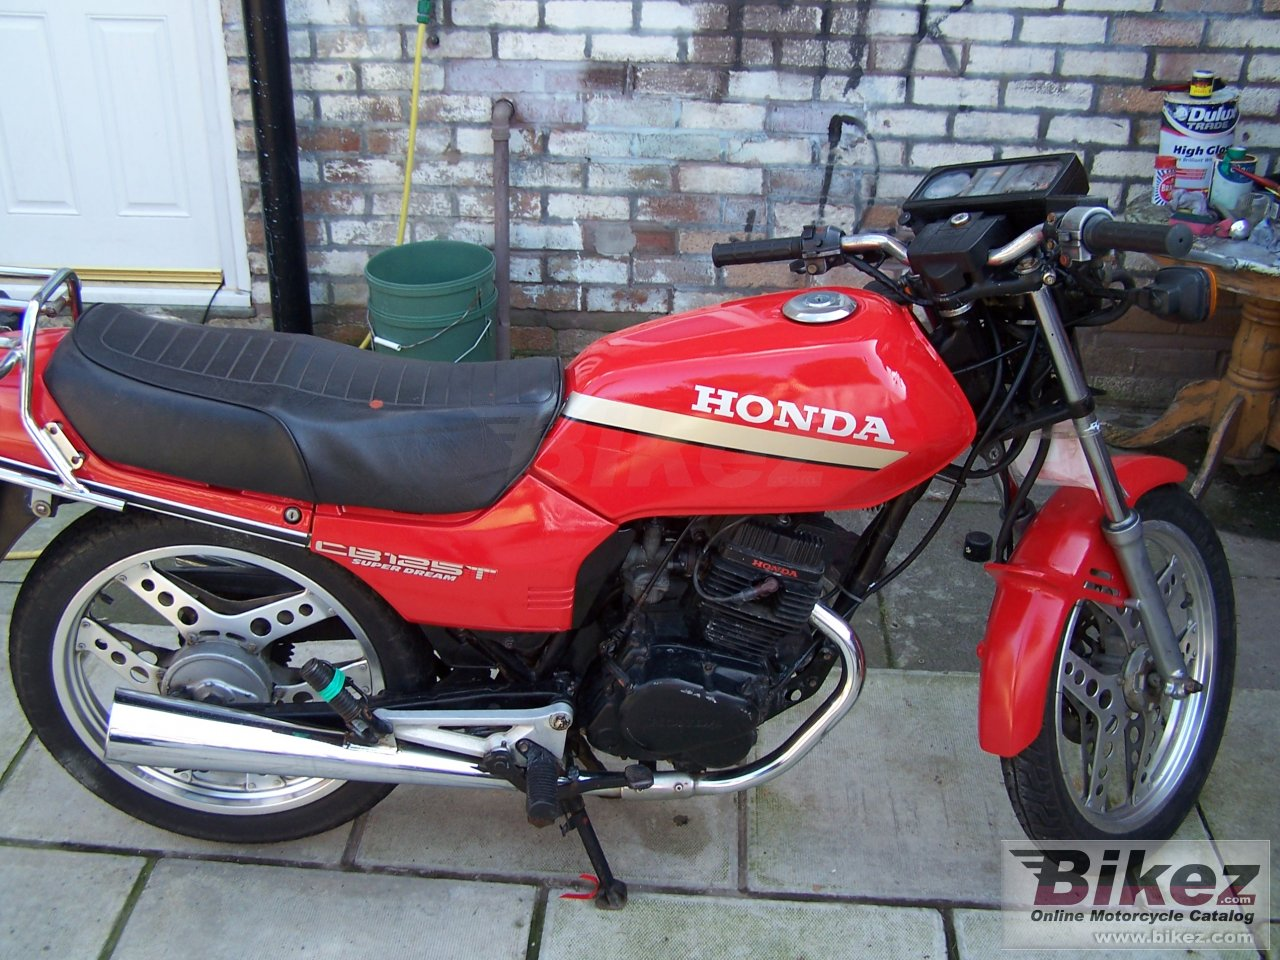 Honda CB 125 T 2 (reduced effect)